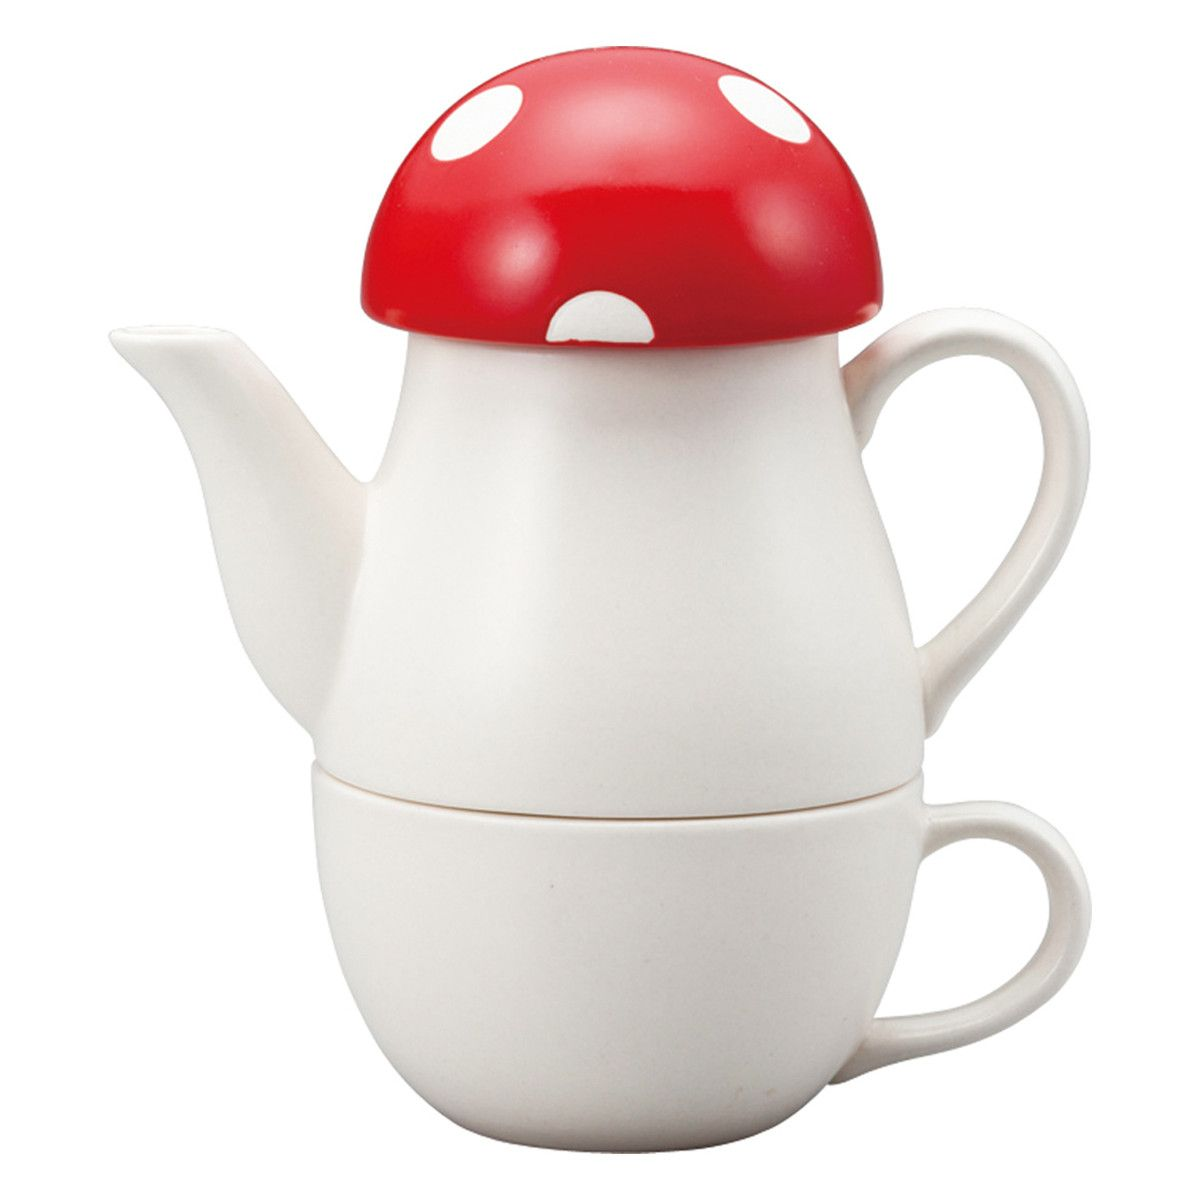 Mushroom Tea For One Set by Japanese Gift Market